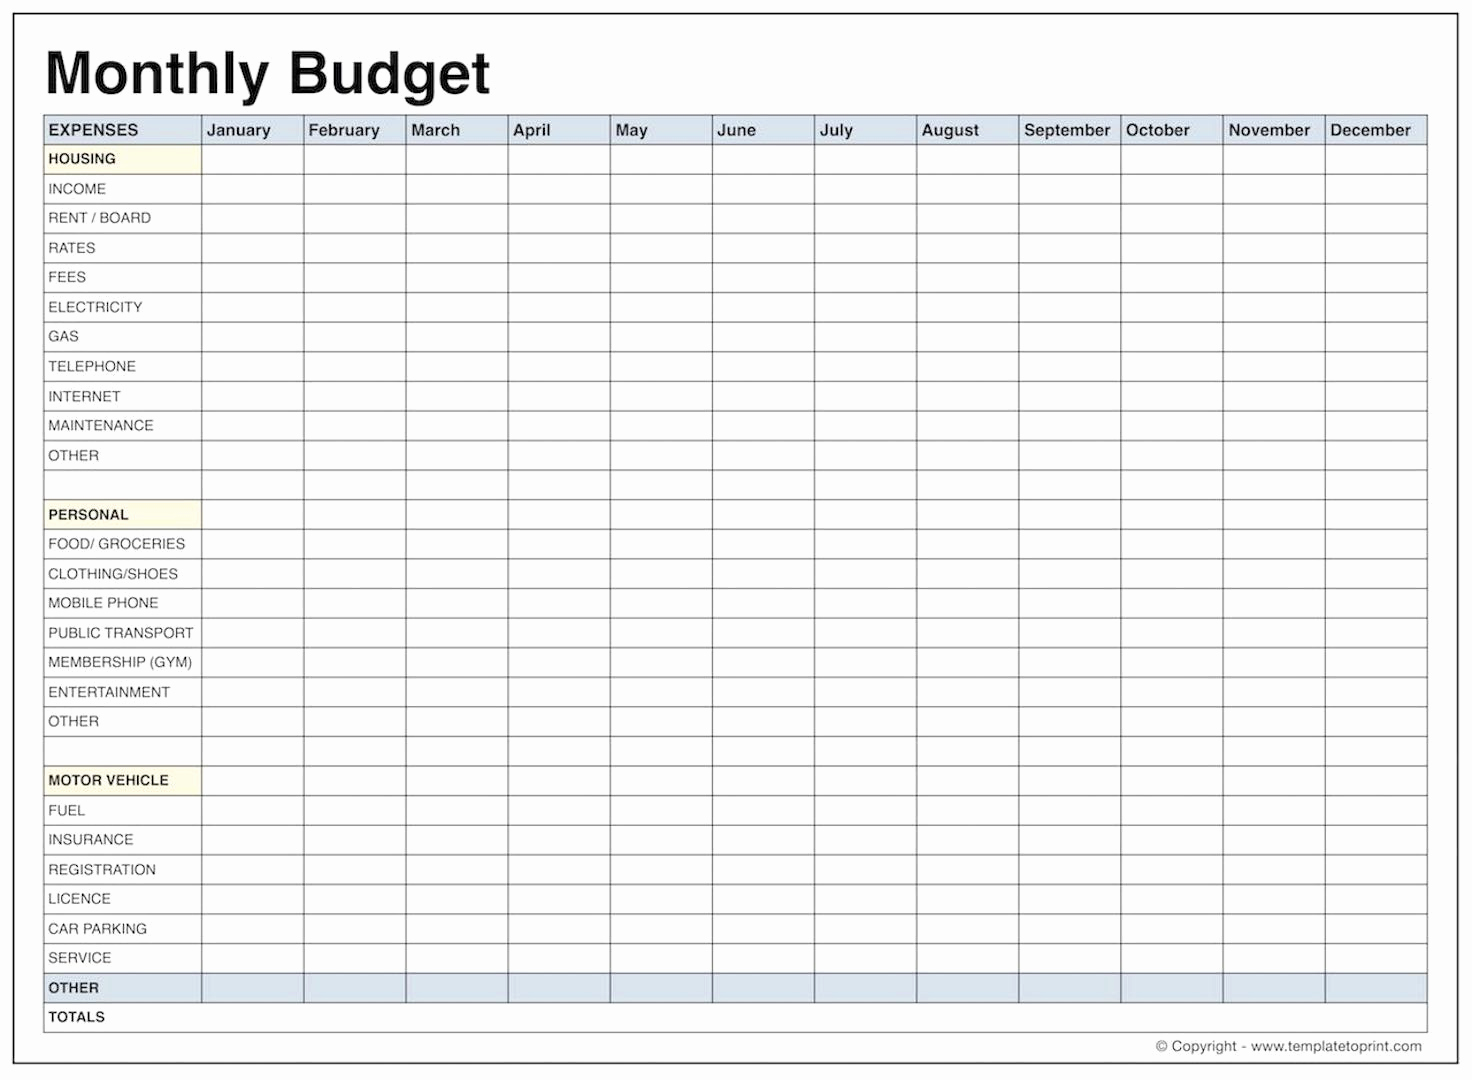 Student Monthly Budget Template Beautiful Monthly Bud Template